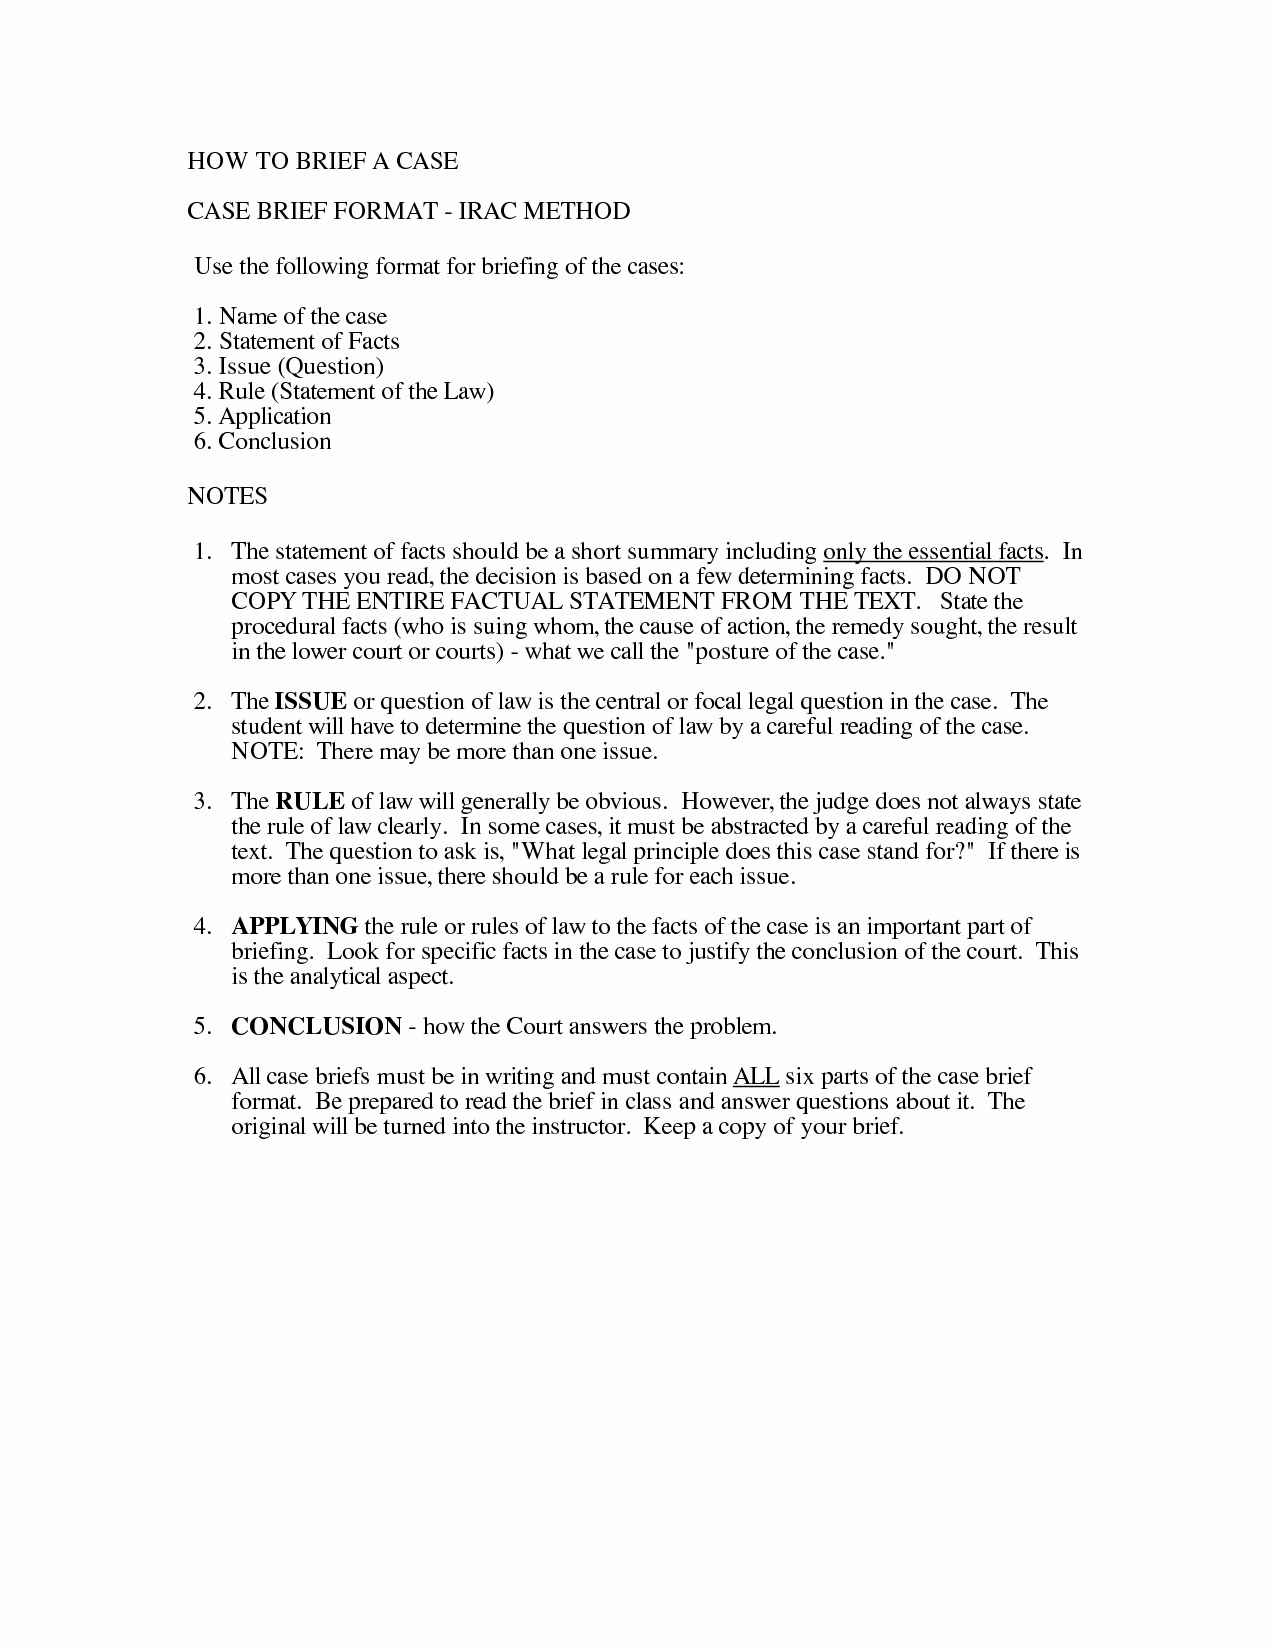 Sample Case Brief Template Awesome Irac format Example Paralegal Information